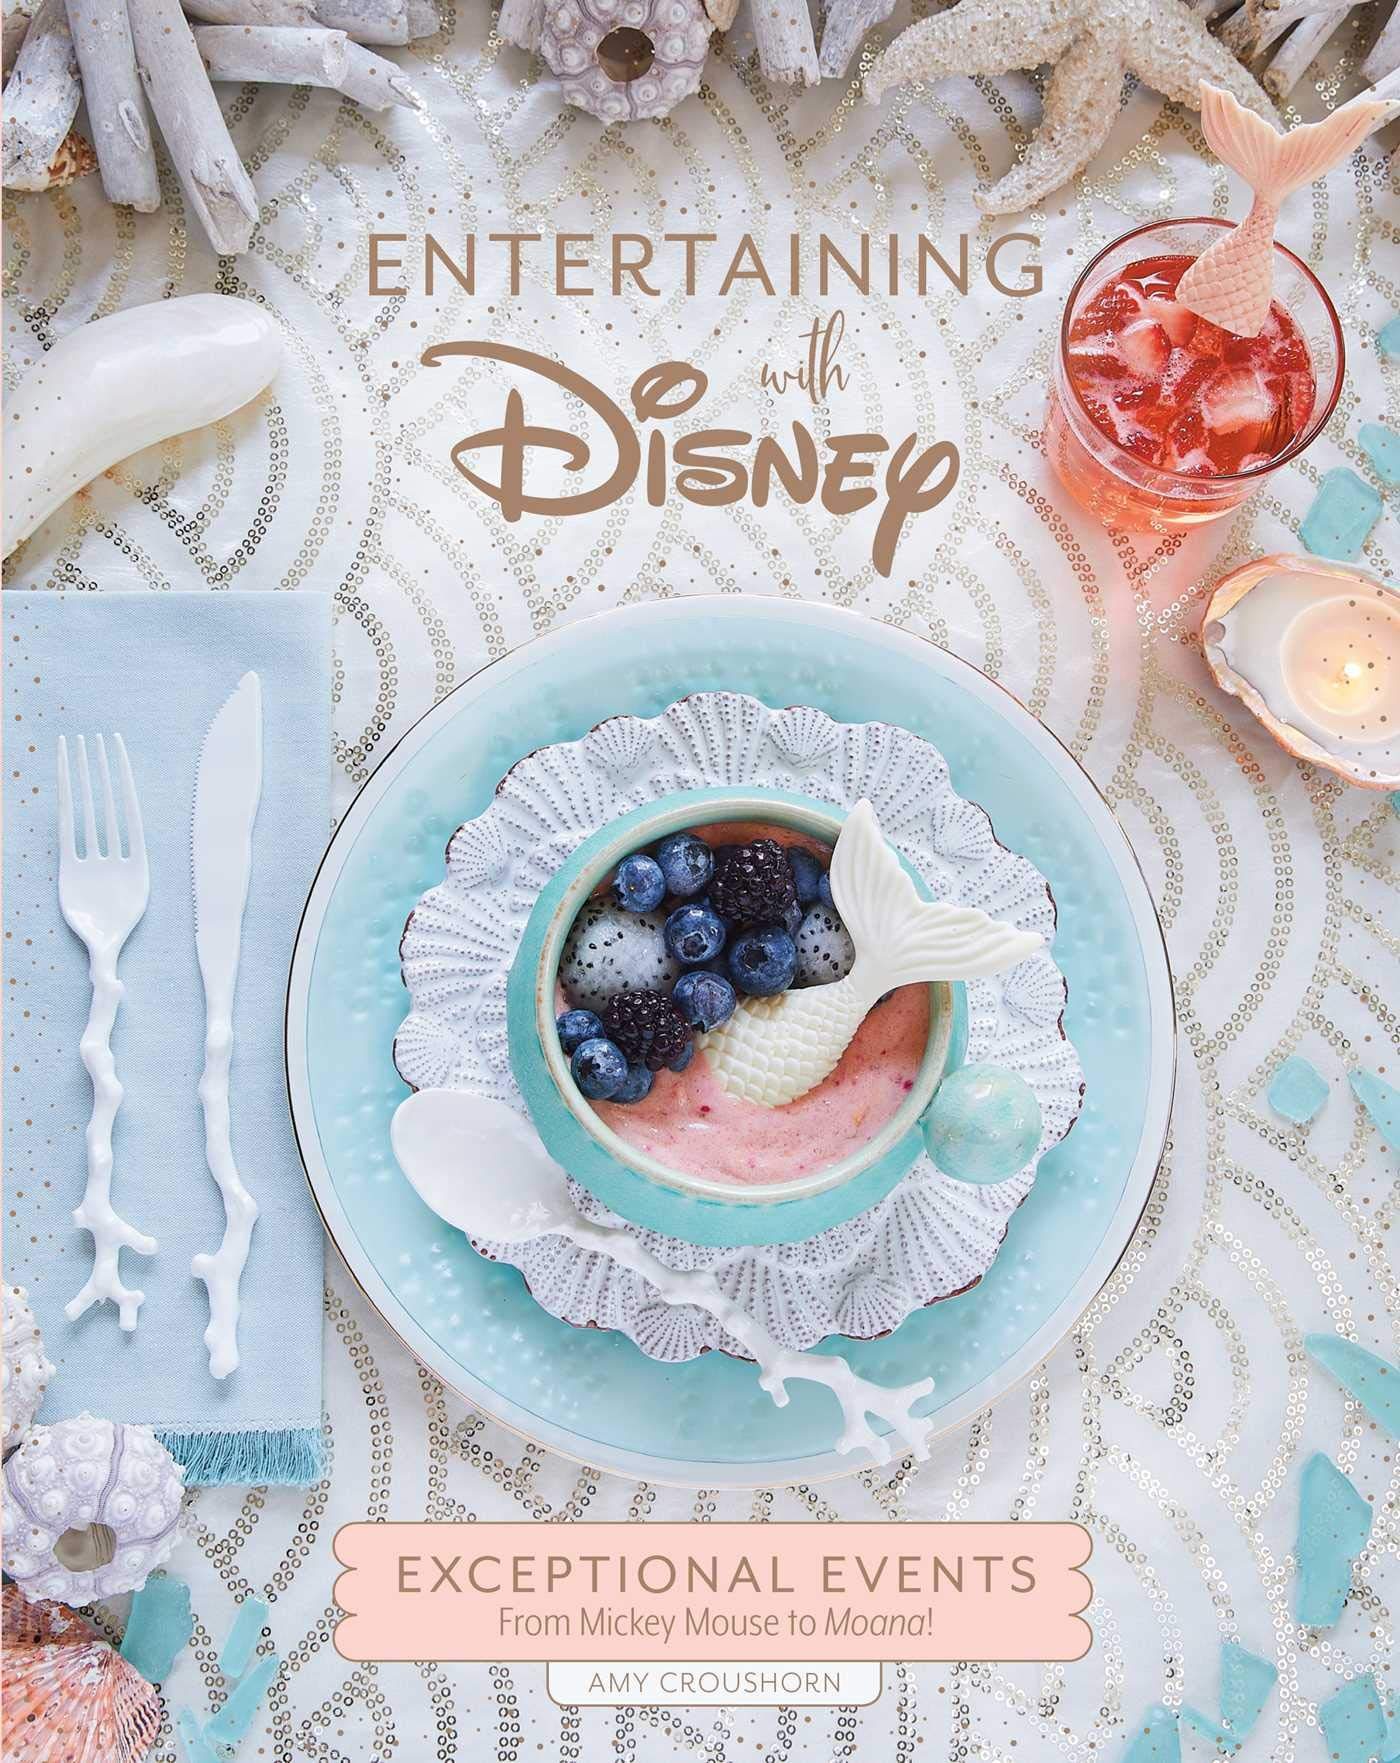 Entertaining with Disney: Exceptional Events From Mickey Mouse to Moana! by Insight Editions